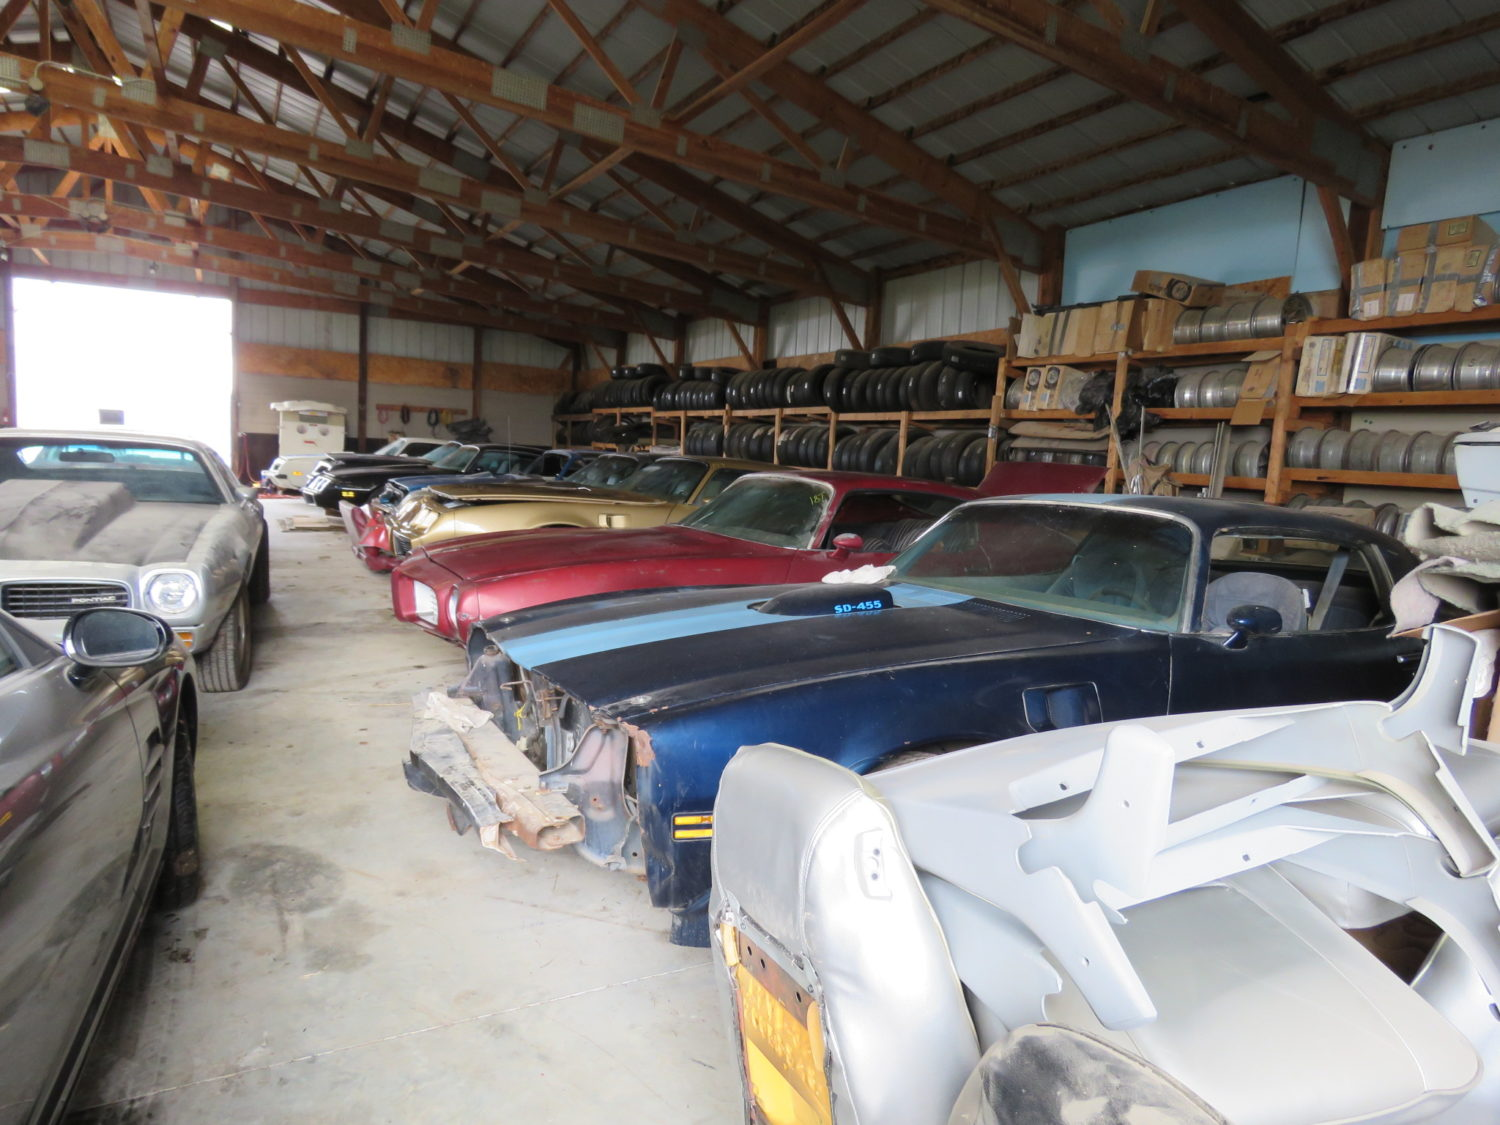 Amazing Trans Am & Pontiac Cars and Parts Hoard! The Kansas Collection - image 10